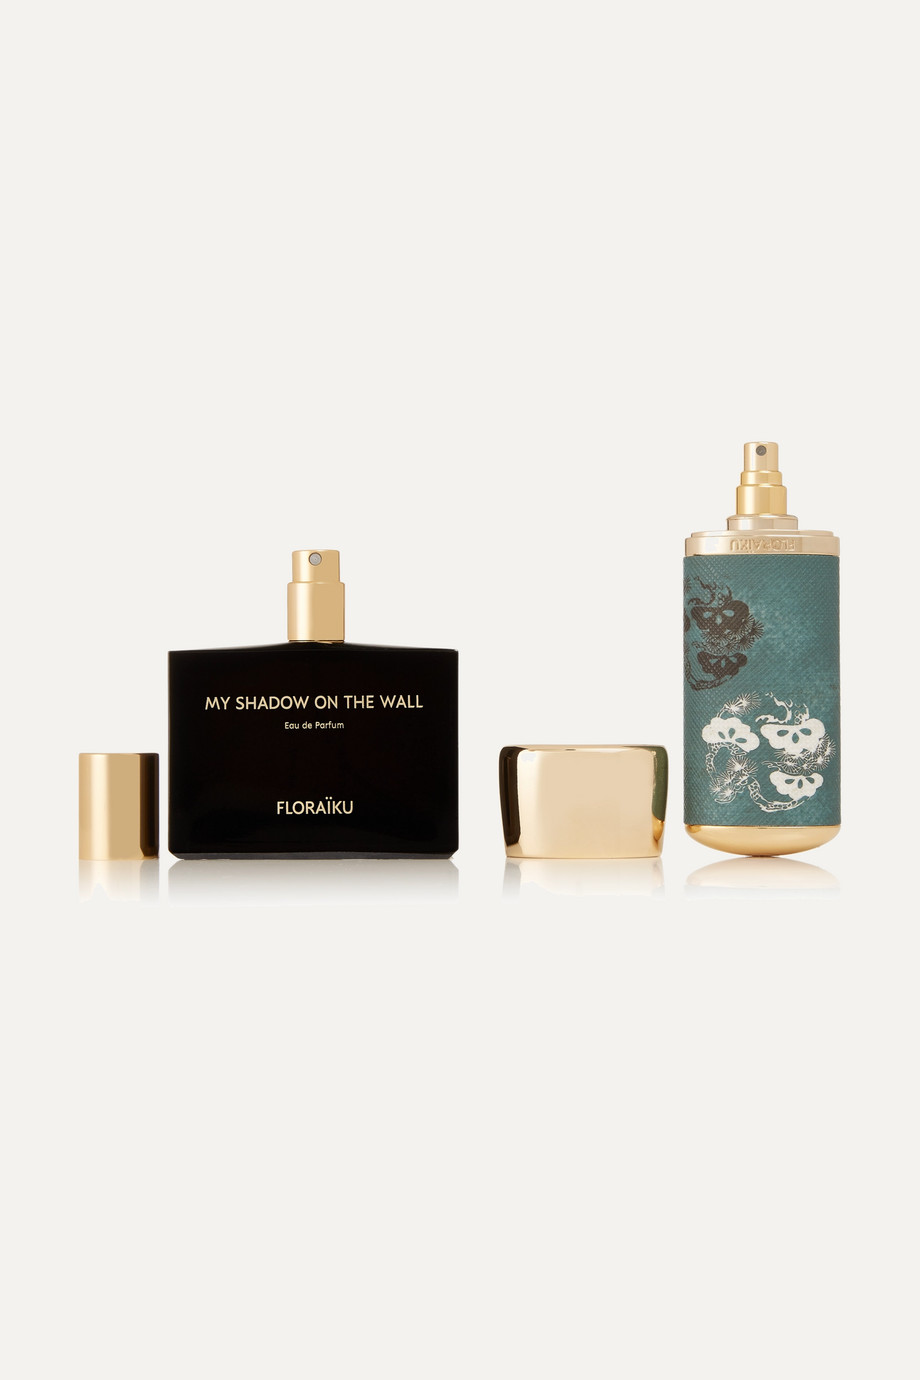 Floraiku My Shadow on the Wall Eau de Parfum, 50ml & 10ml